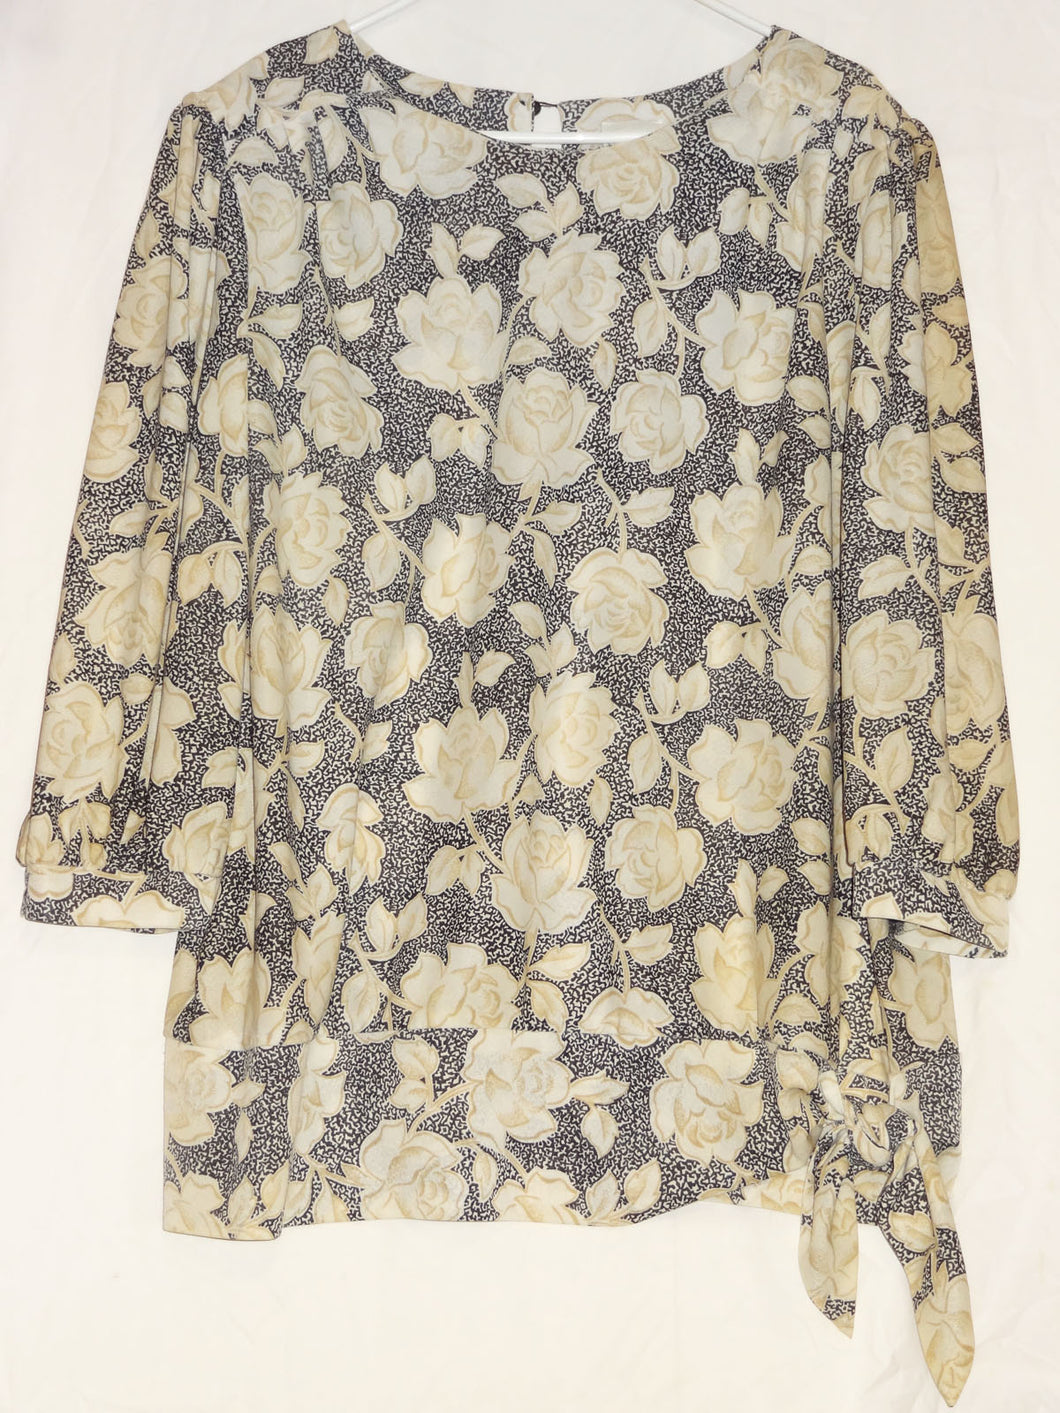 SHEENA, WOMEN'S FLORAL PRINT KNIT TOP, SIZE 24 1/2 - Junkdrawercoolfinds.com